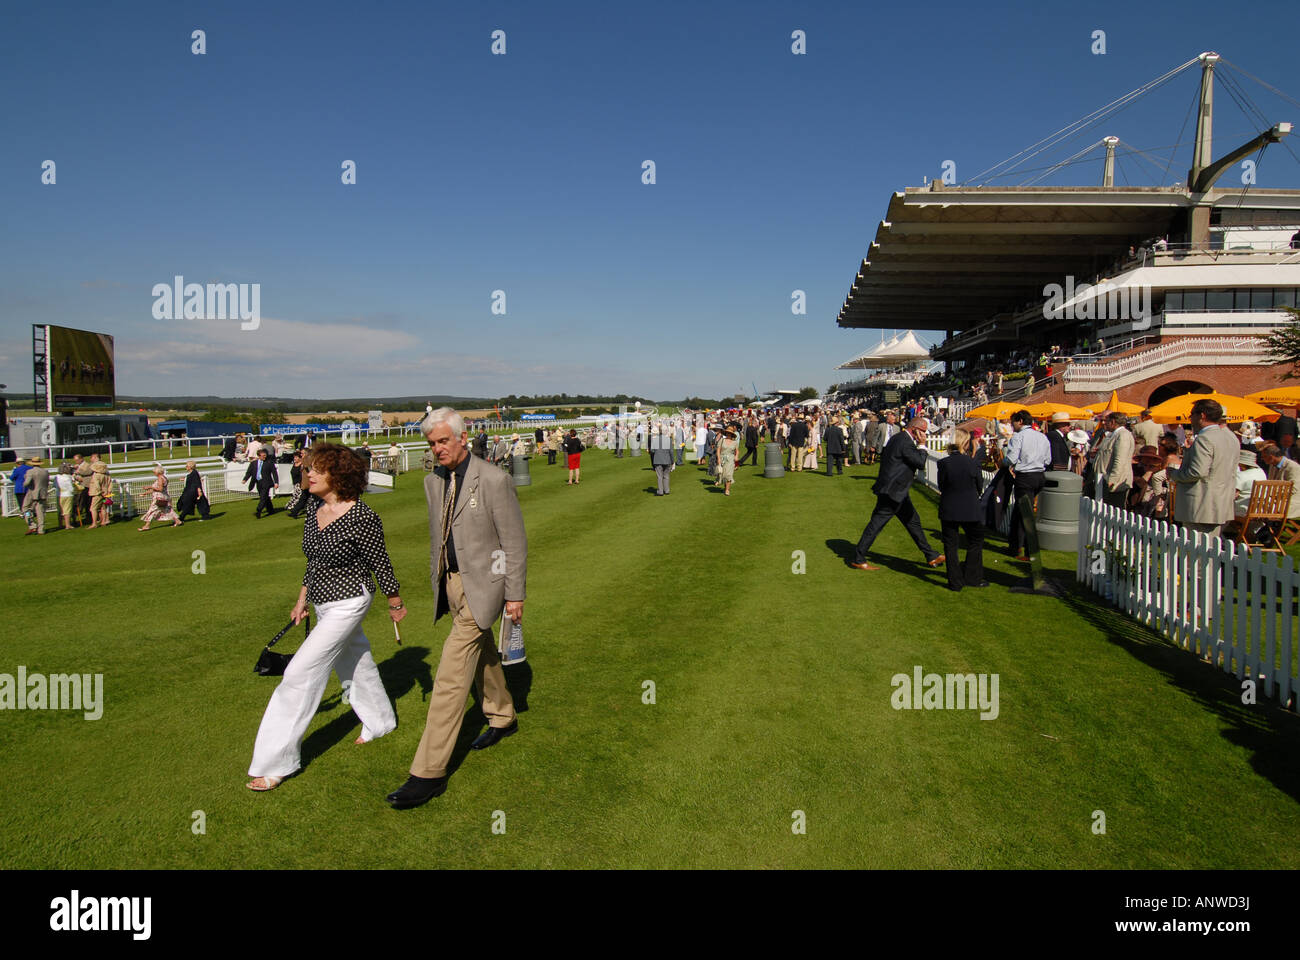 Racegoers at the Glorious Goodwood race meeting Picture by Andrew Hasson July 31st 2007 - Stock Image